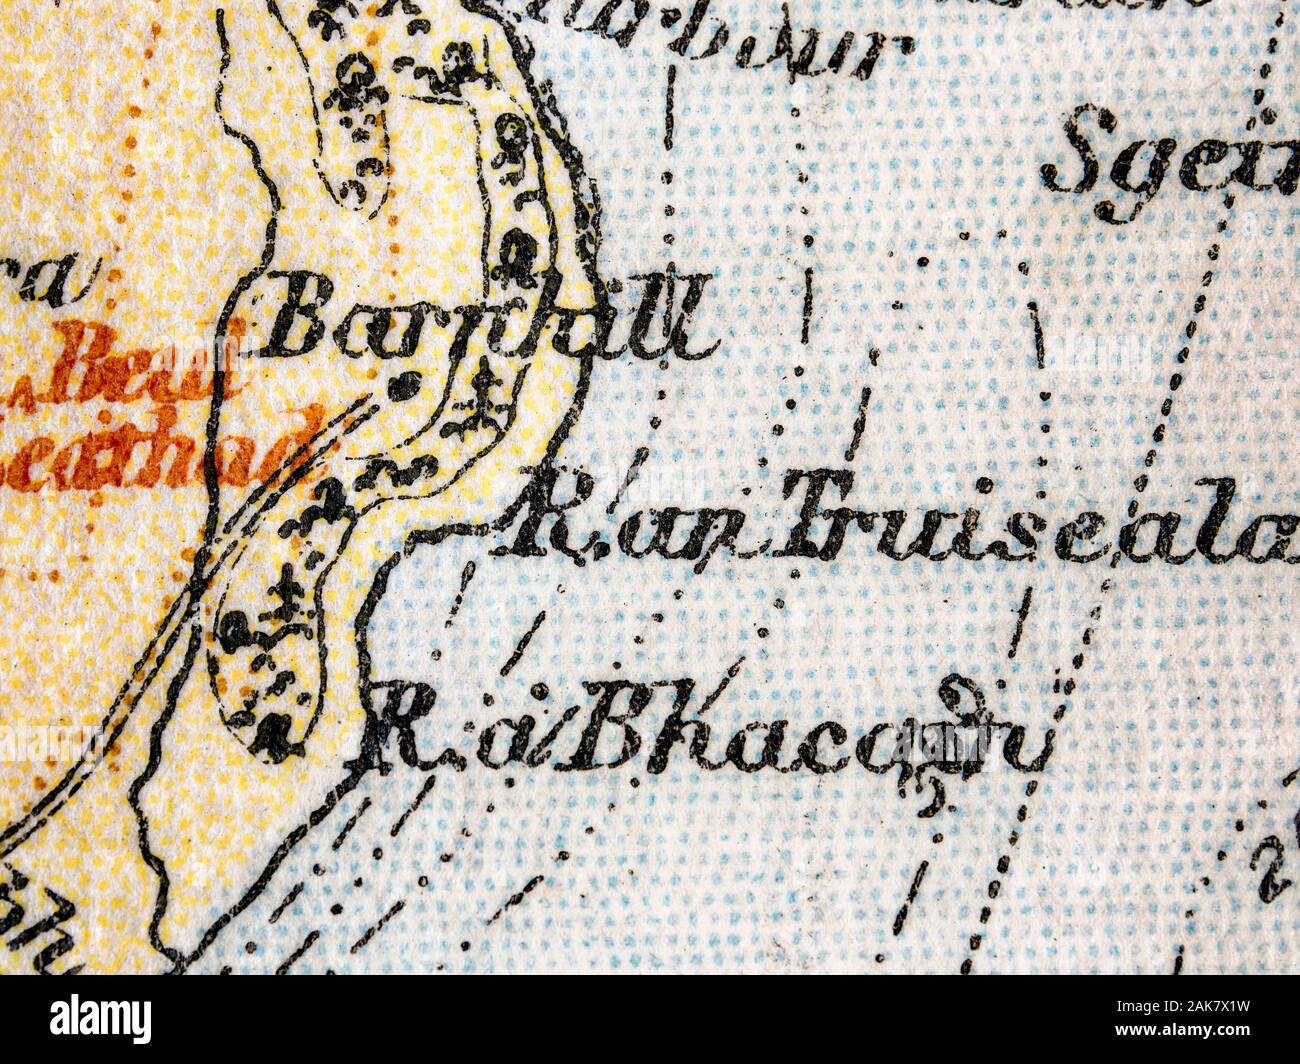 Old Map Of The Isle Of Jura Scotland The Map Features Barnhill Where The Author George Orwell Completed His Novel 1984 Stock Photo Alamy